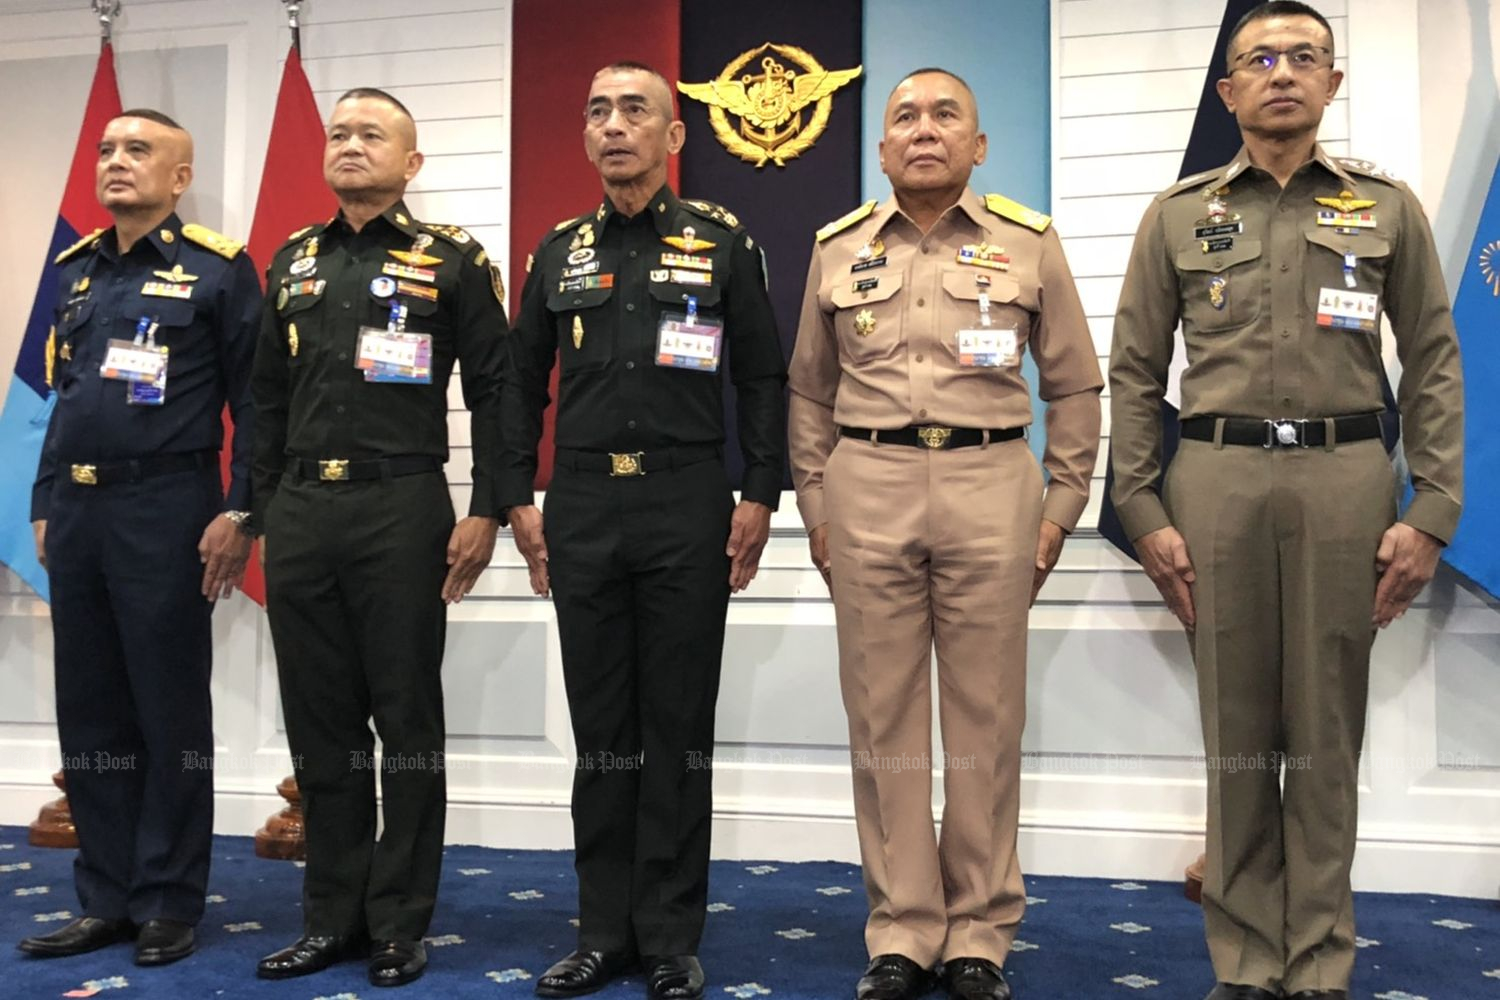 The new leaders of the three armed forces and the Royal Thai Police meet for the first time on Monday. From left: air force chief ACM Airbull Suttiwan, army chief Gen Narongphan Jitkaewtae, defence forces chief Gen Chalermpol Srisawasdi, navy chief Adm Chartchai Sriworakhan and national police chief Pol Gen Suwat Jangyodsuk. (Photo by Wasssana Nanuam)